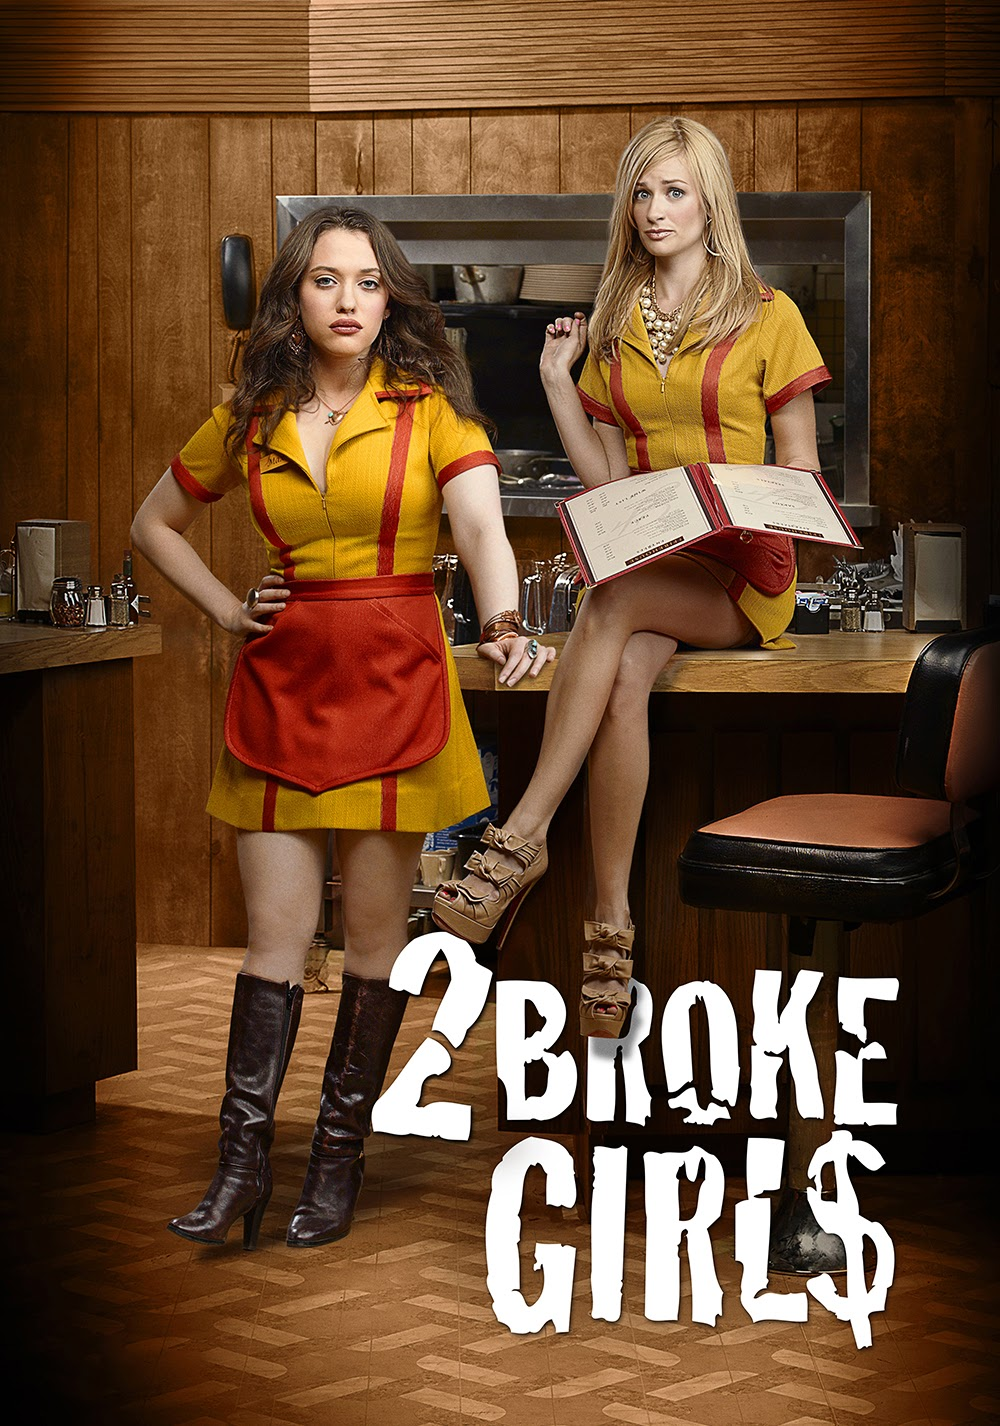 2 broke girls 1 stagione streaming ita akismet streaming - La ragazza della porta accanto streaming ita ...